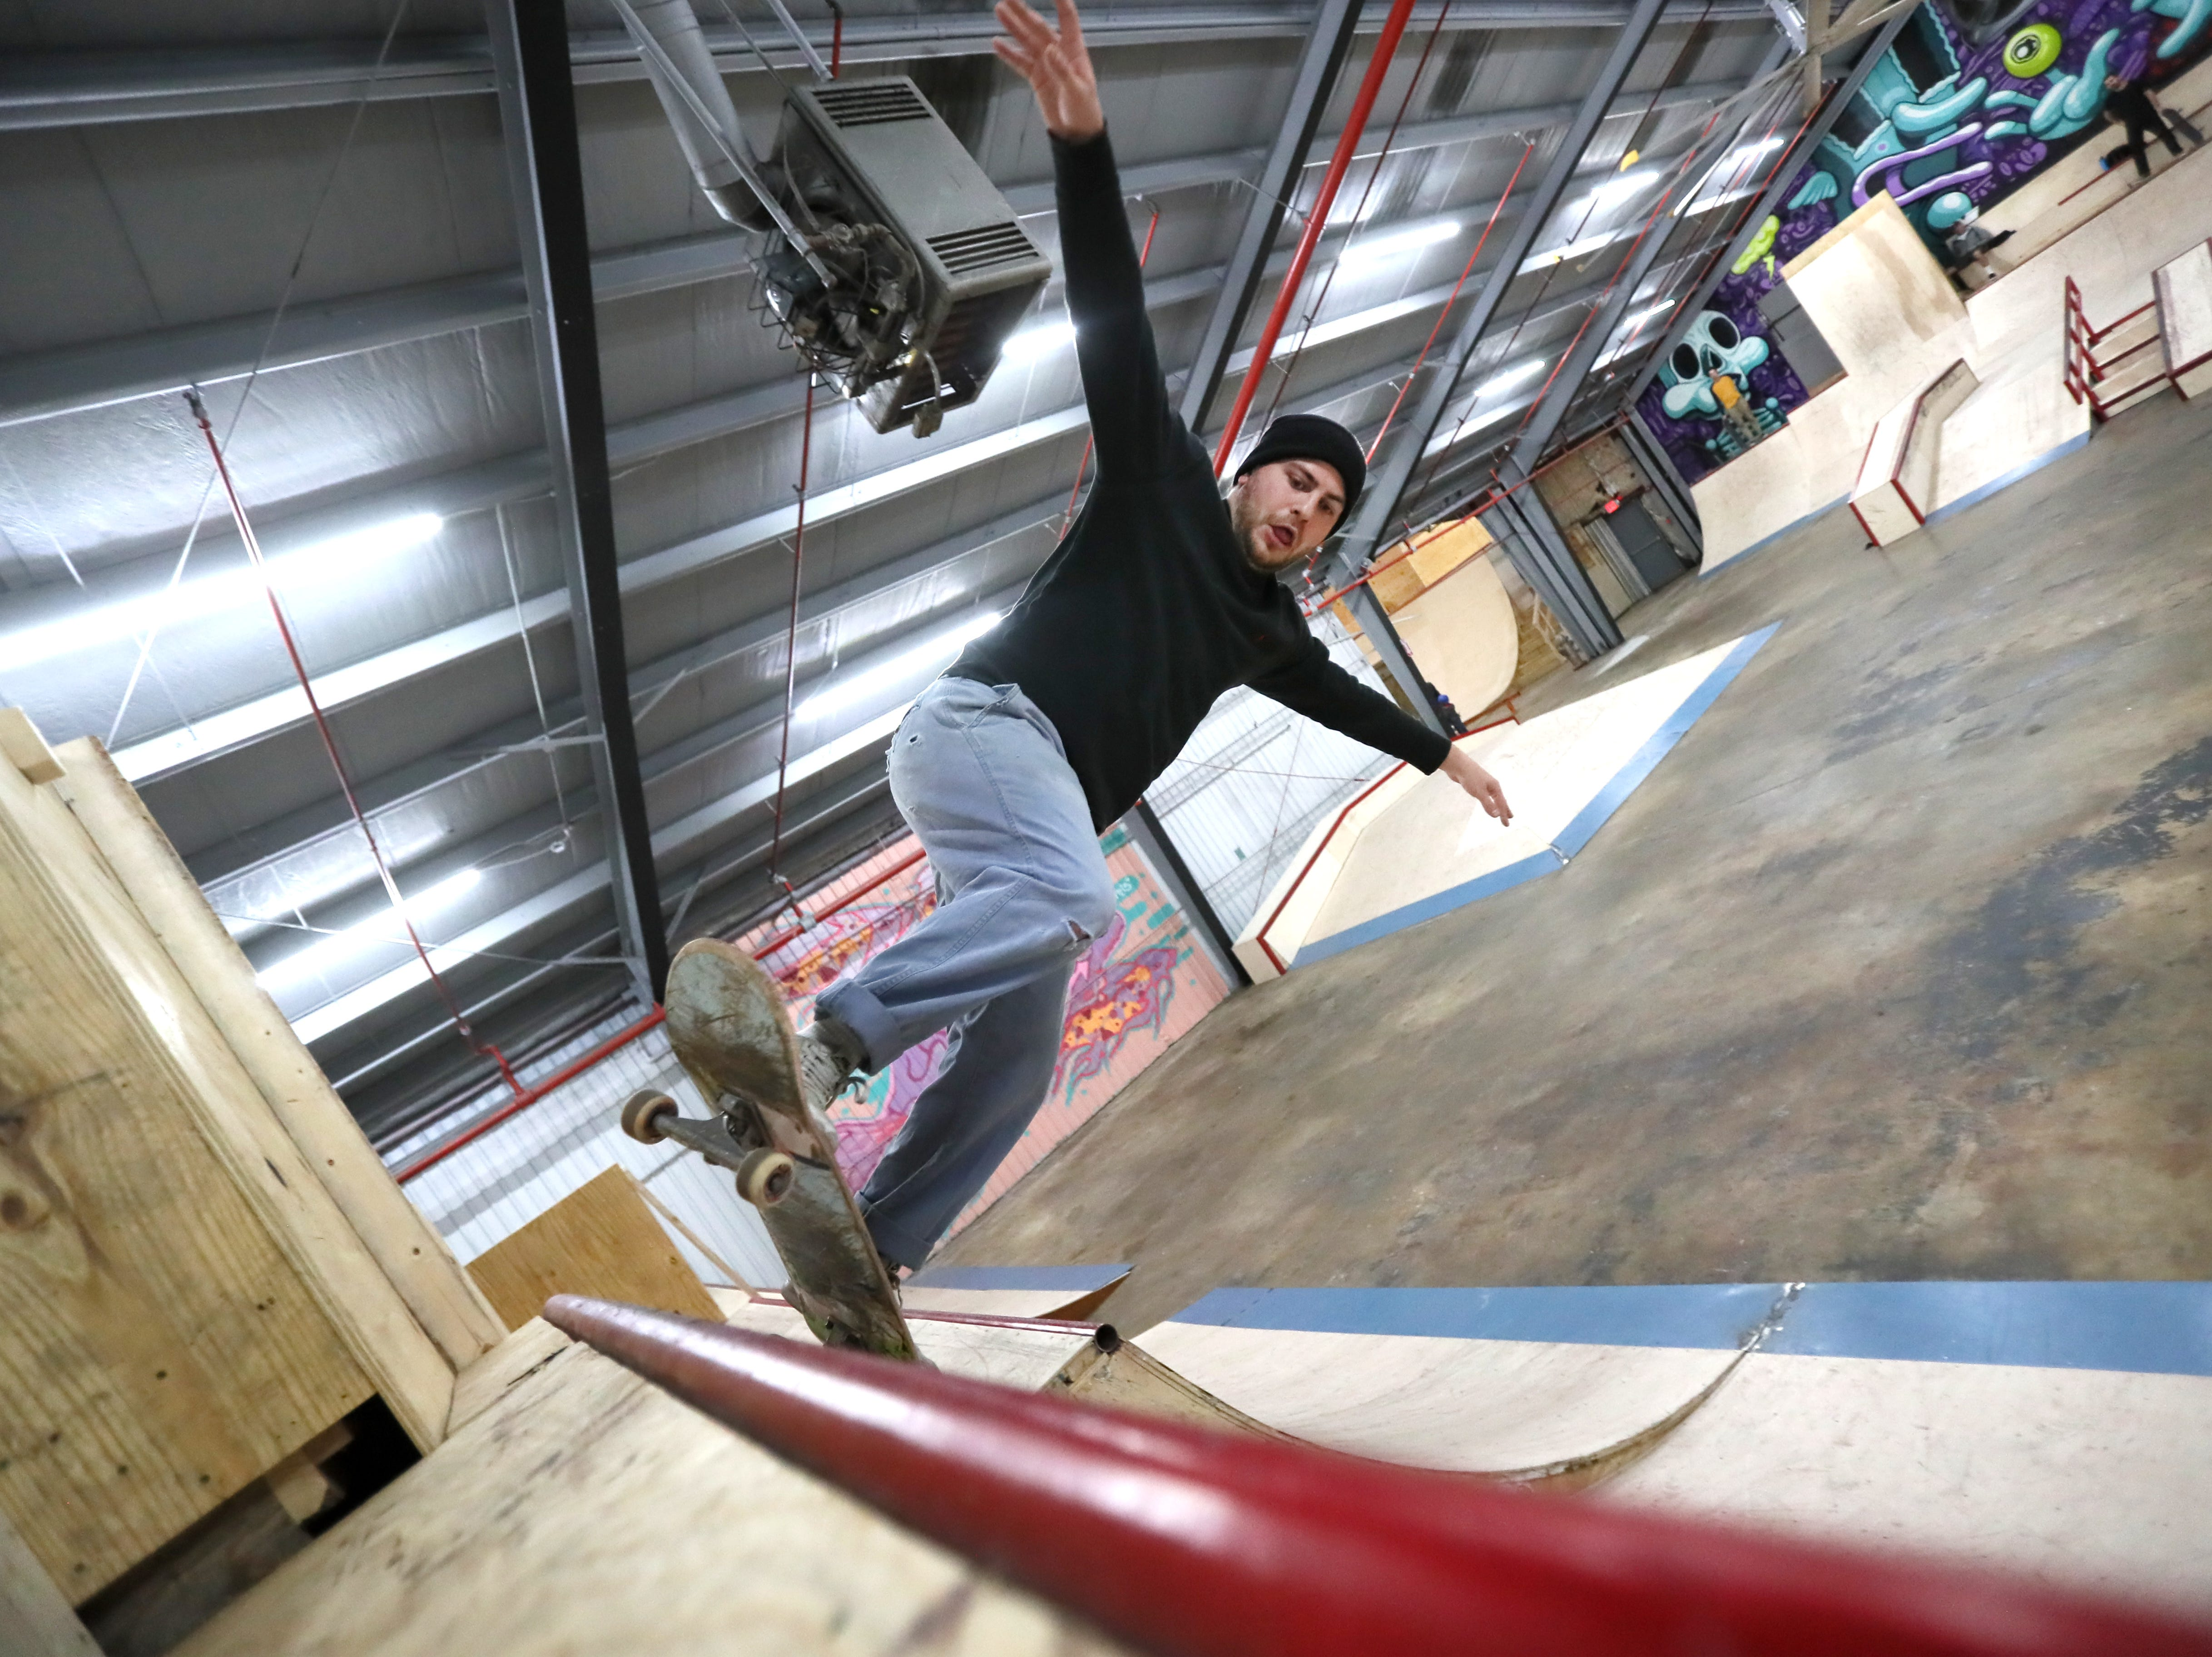 Nathan Woloshin, 26, rides inside Society Skatepark, a joint venture with Contact Skateboard Shop in the Broad Avenue Arts District which held its soft opening on Thursday, Dec. 20, 2018.